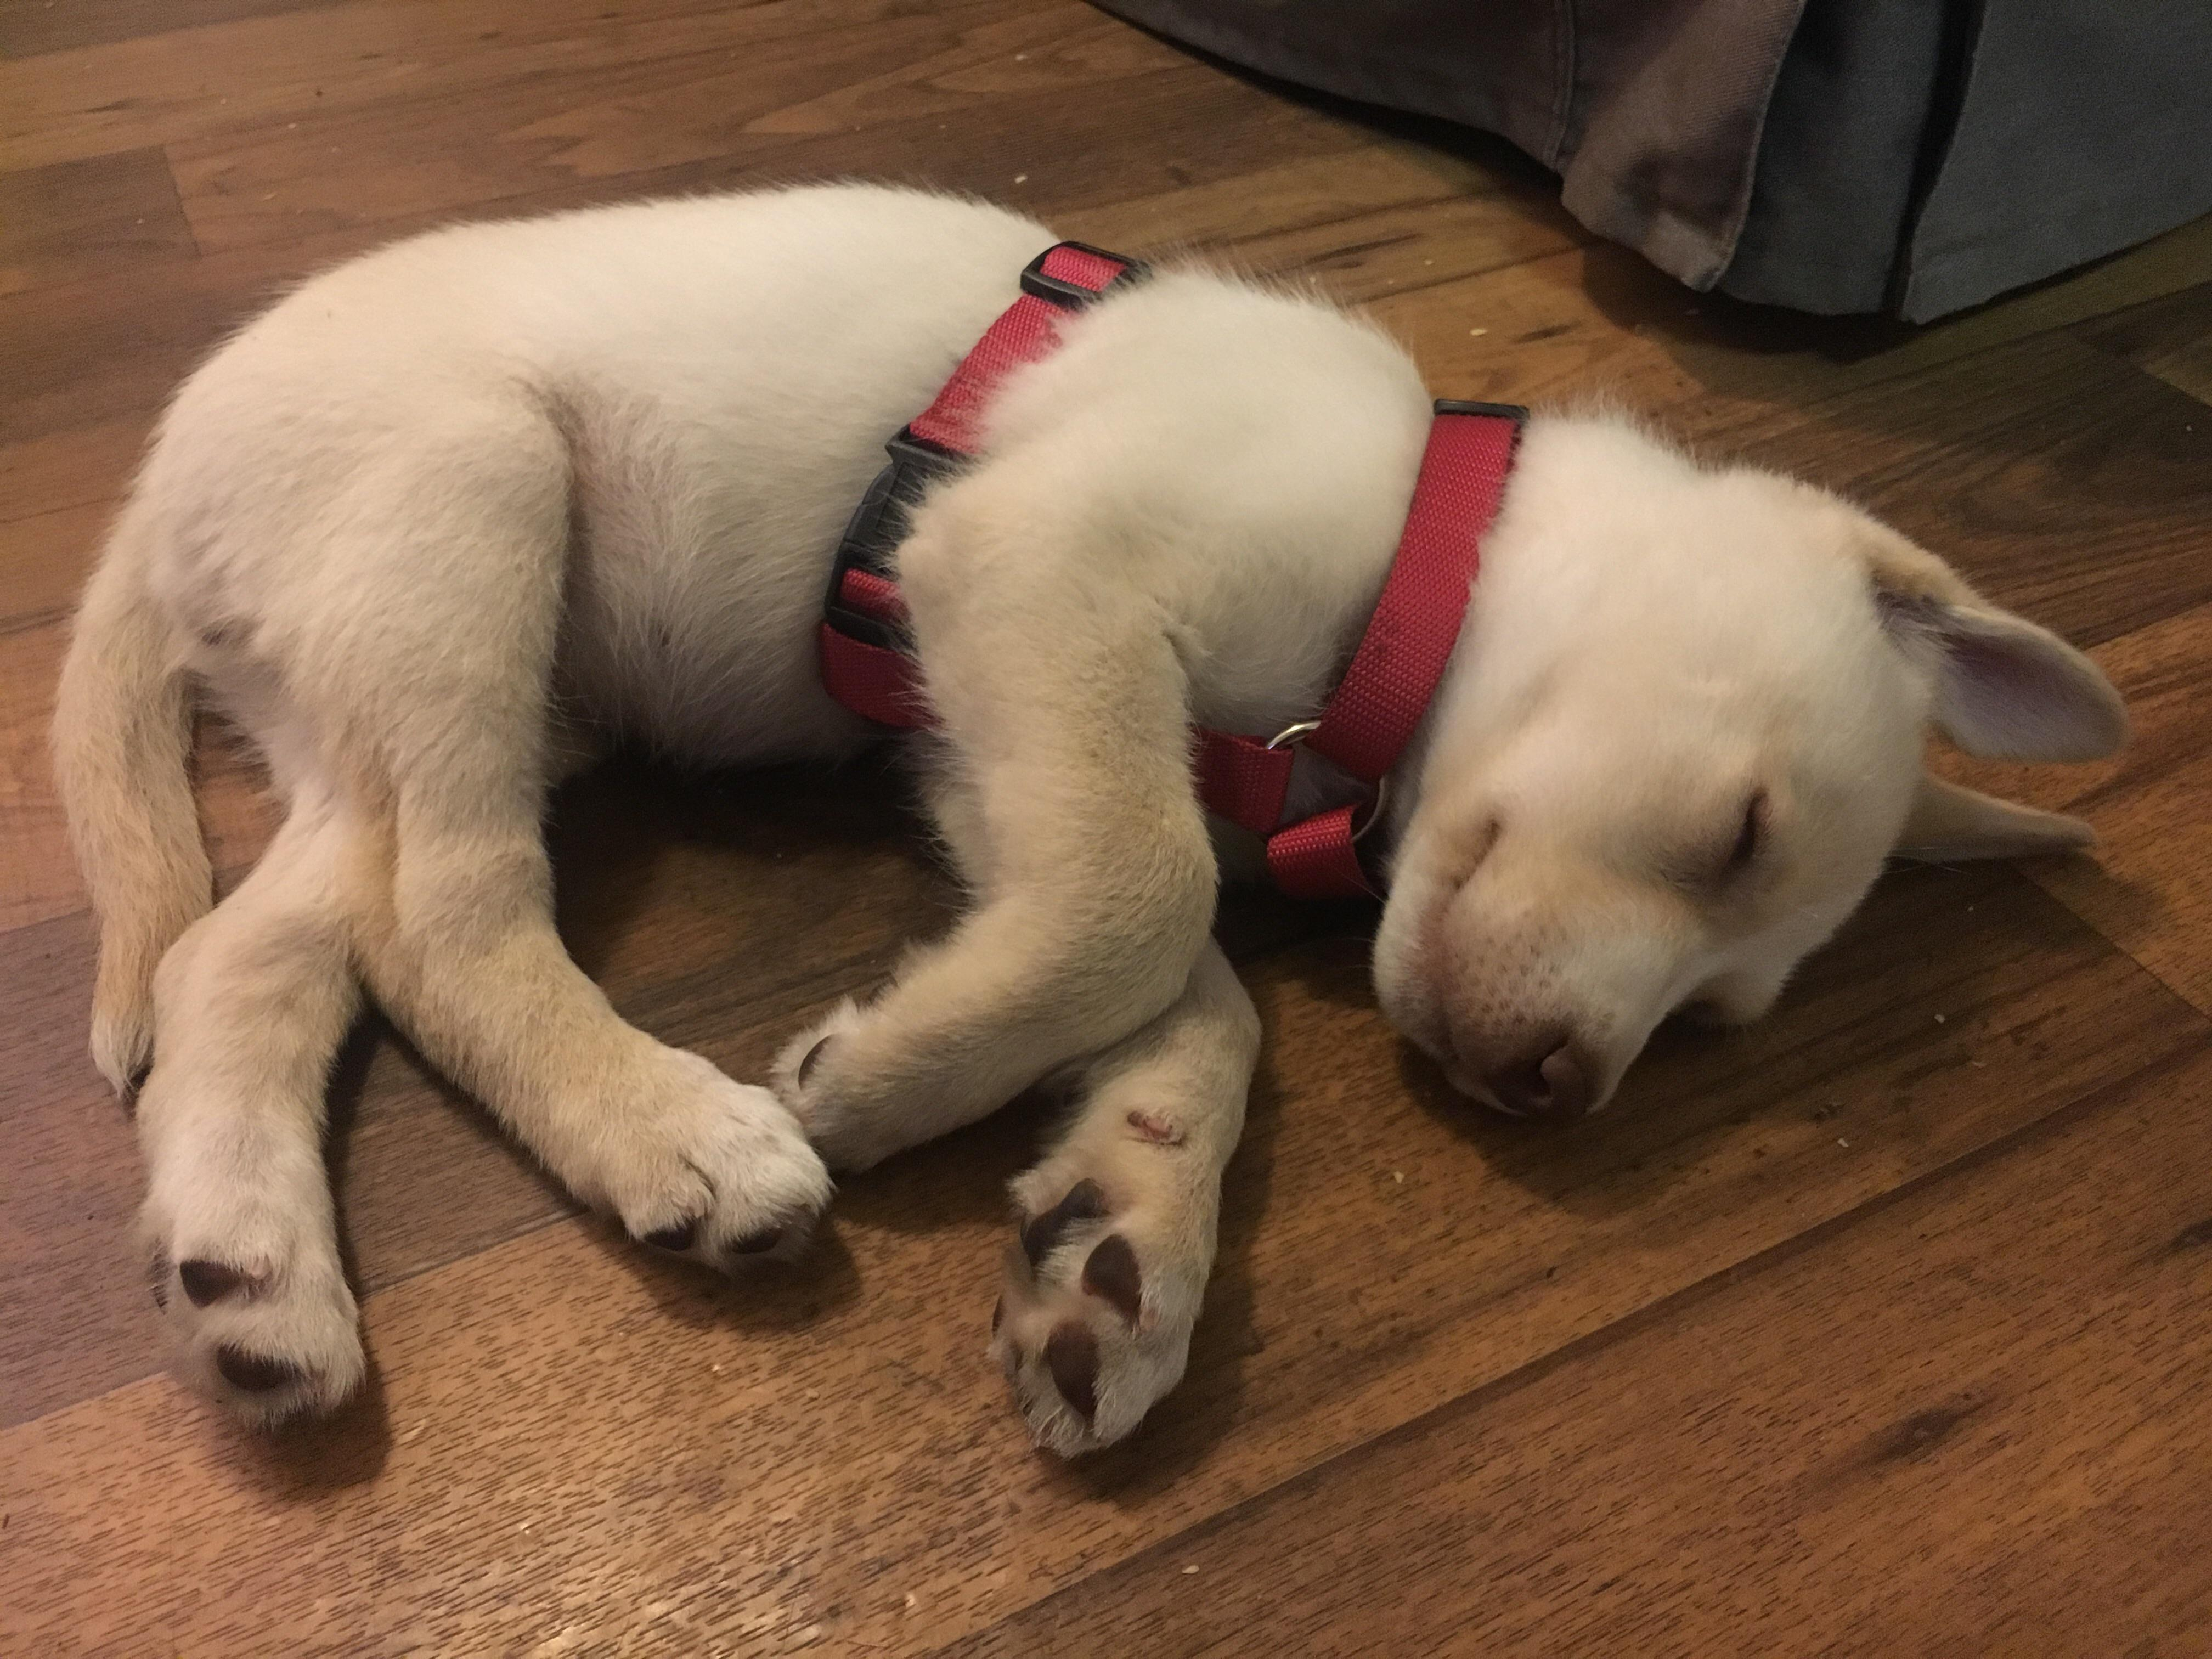 White Boxer Husky Mix Wait To See What She Looks Like All Grown Boxer Husky Mix Wait To See What She Looks Like All Boxer Pug Mix Lifespan Pitbull Boxer Pug Mix bark post Boxer Pug Mix